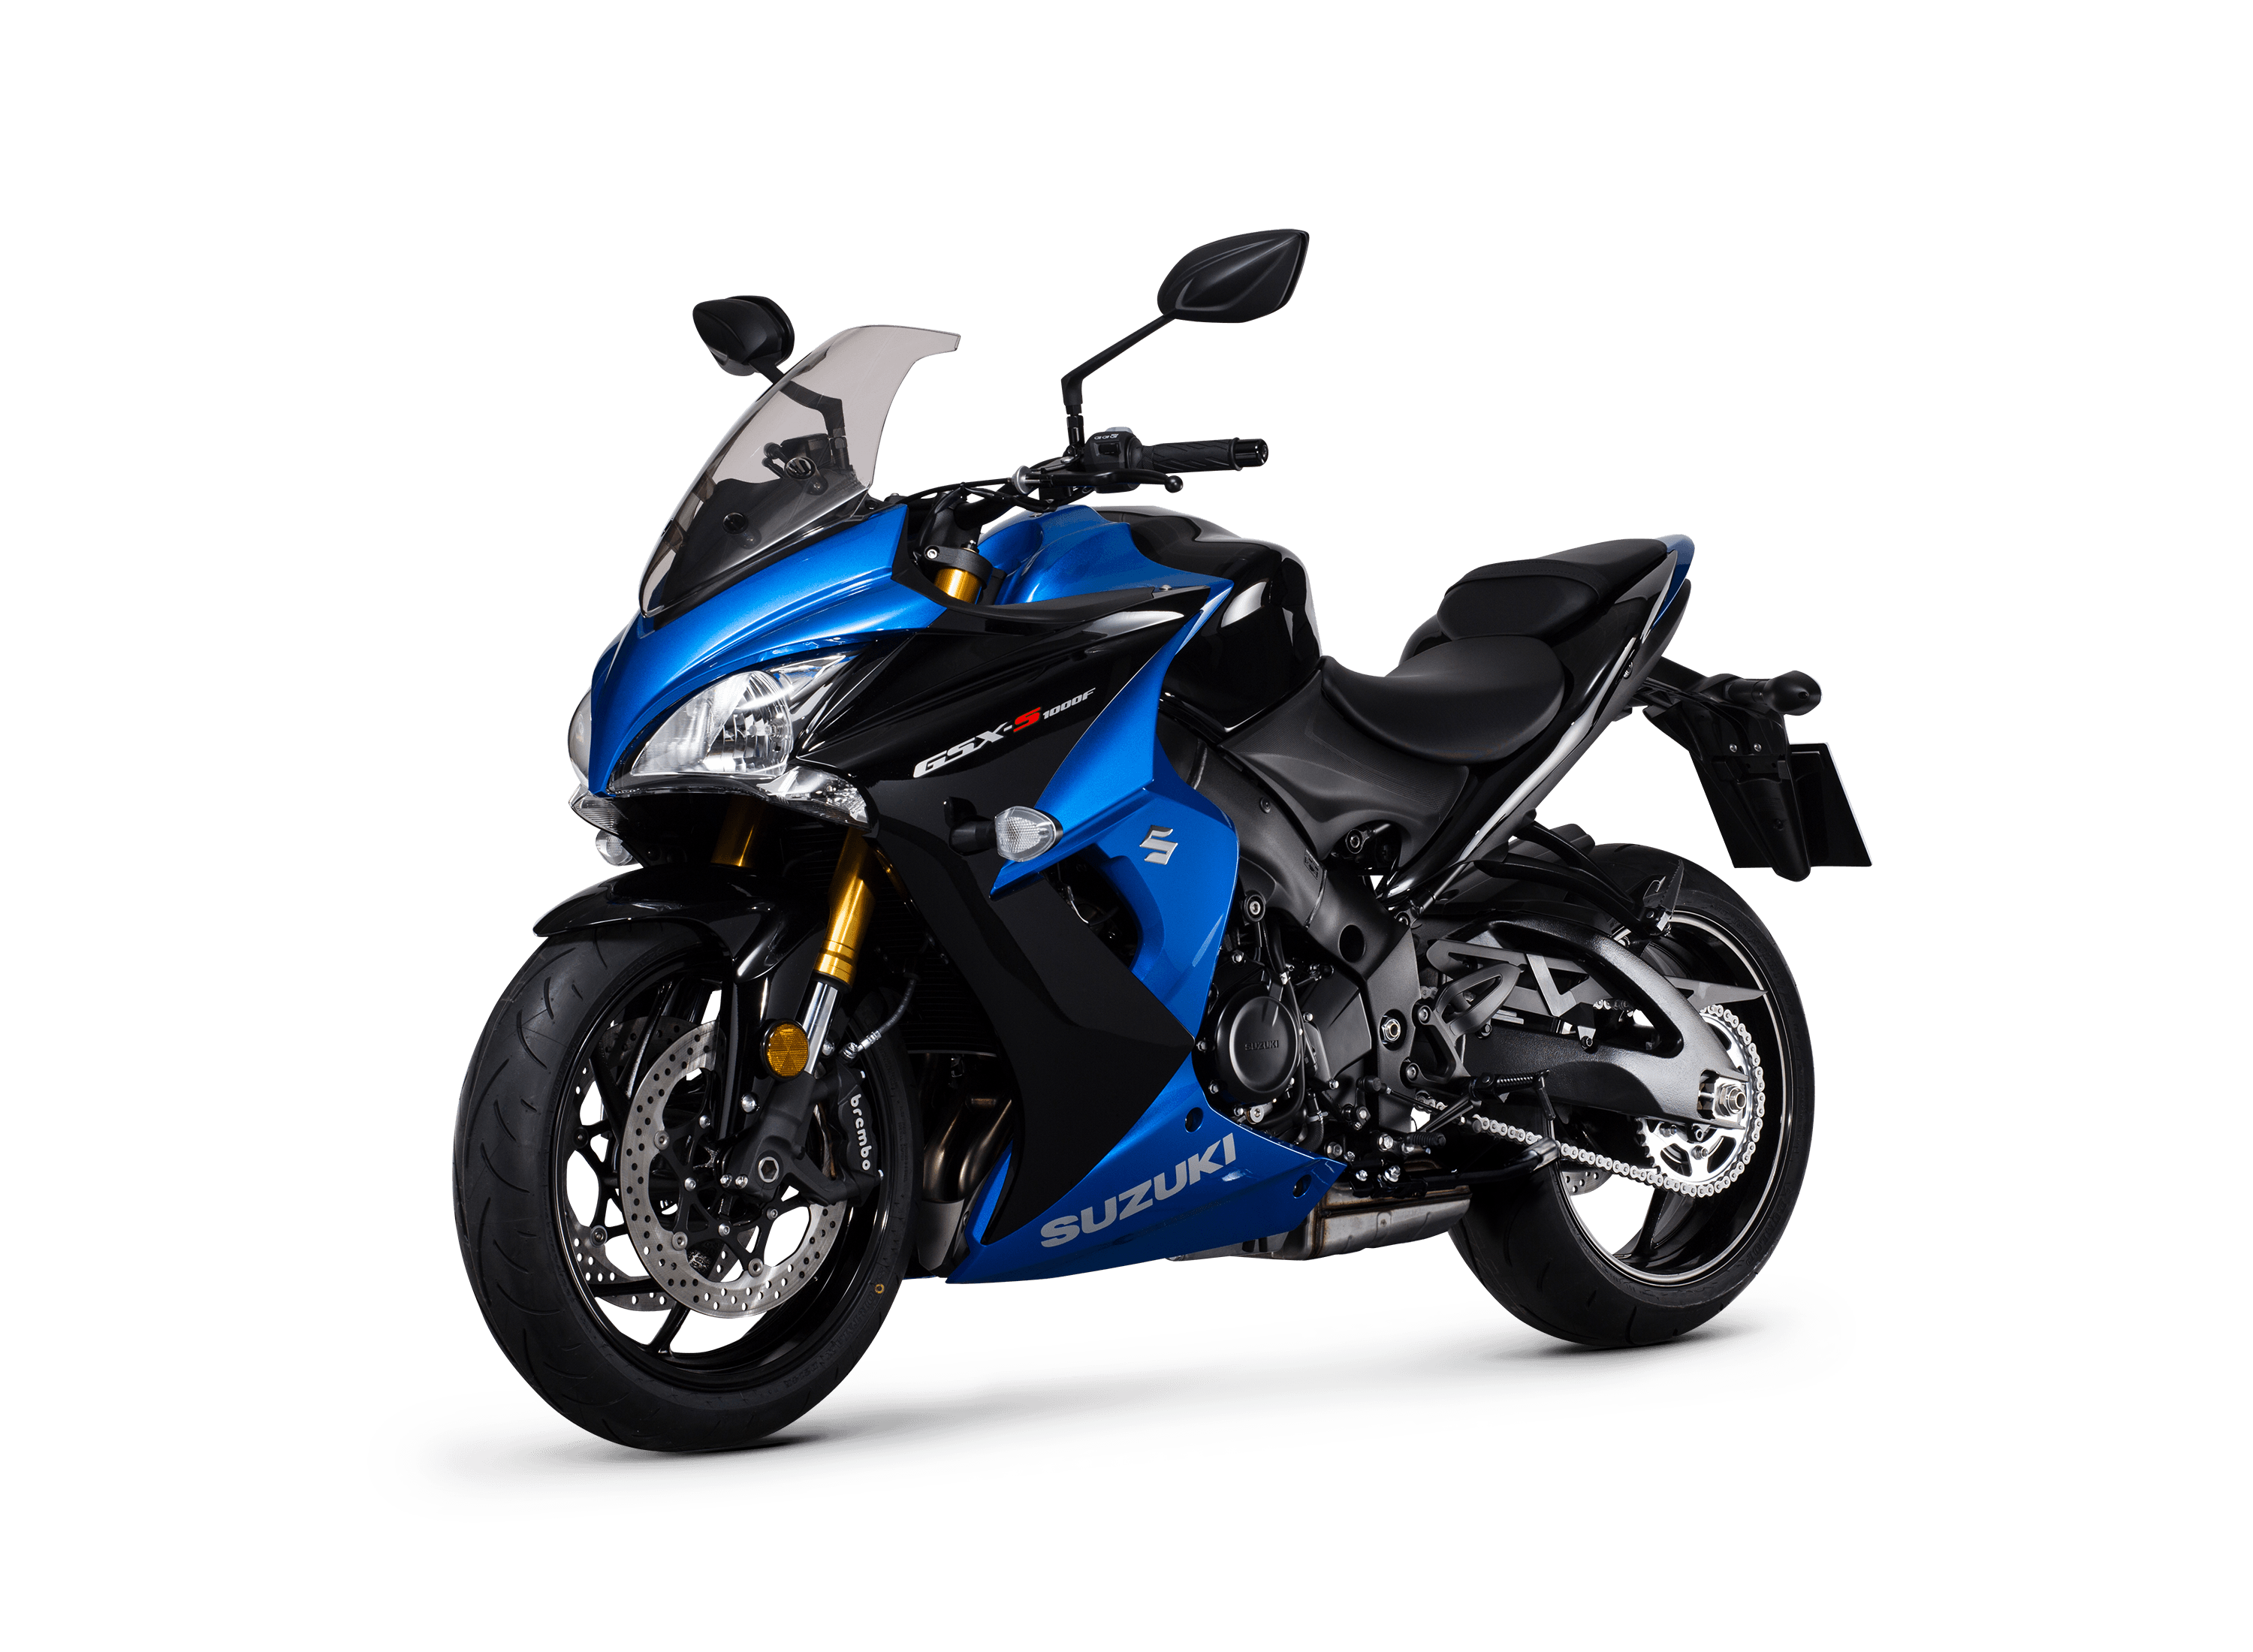 2018 suzuki gsx s1000f. fine 2018 gsxs1000f a comfortable package built for serious onroad pleasure meet  the road with legendary performance and 2018 suzuki gsx s1000f r